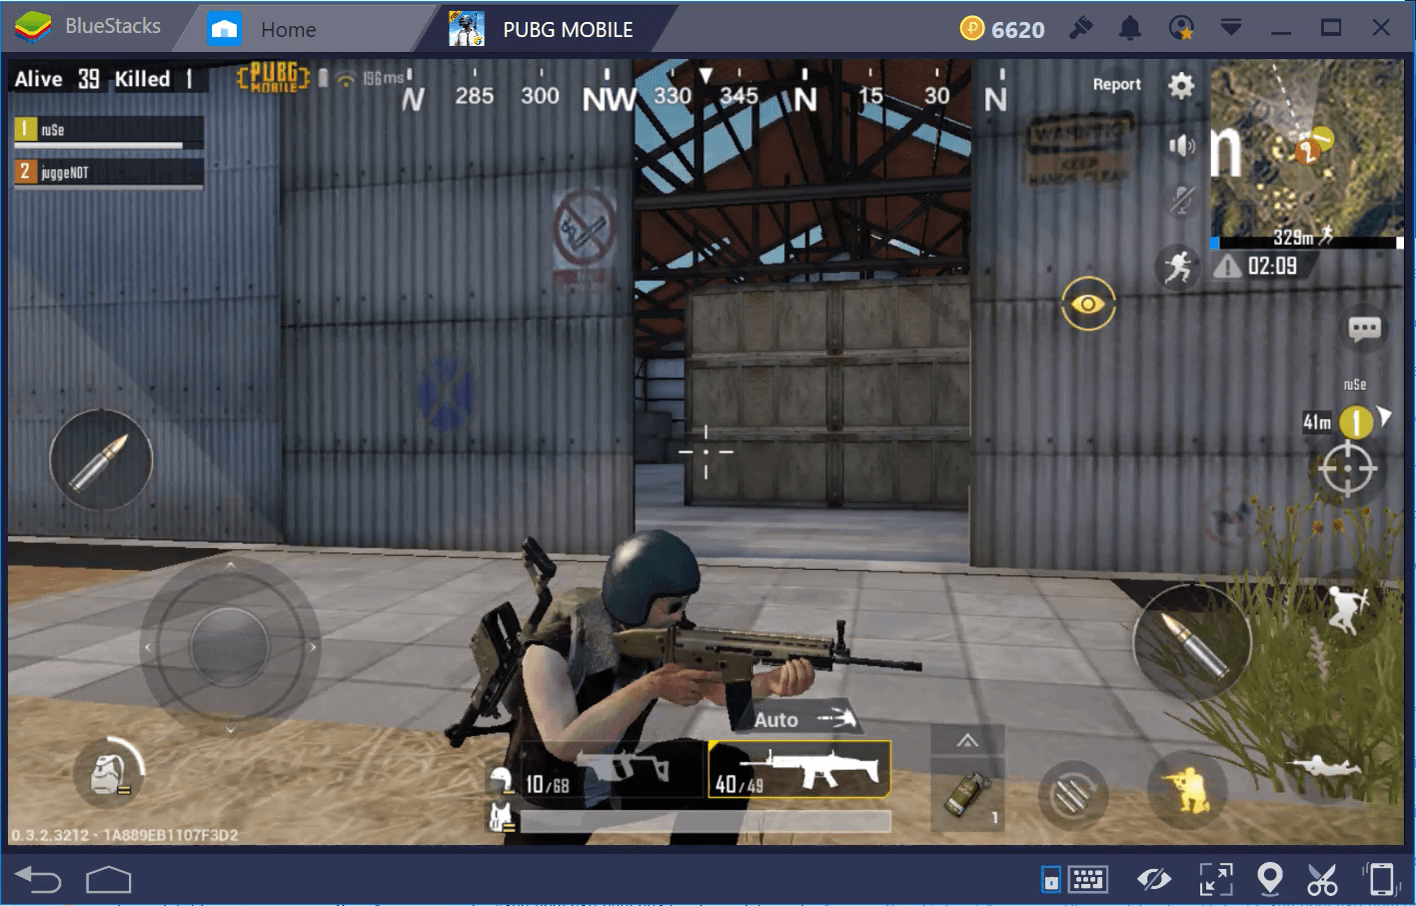 PUBG Mobile Weapon Guide 2018